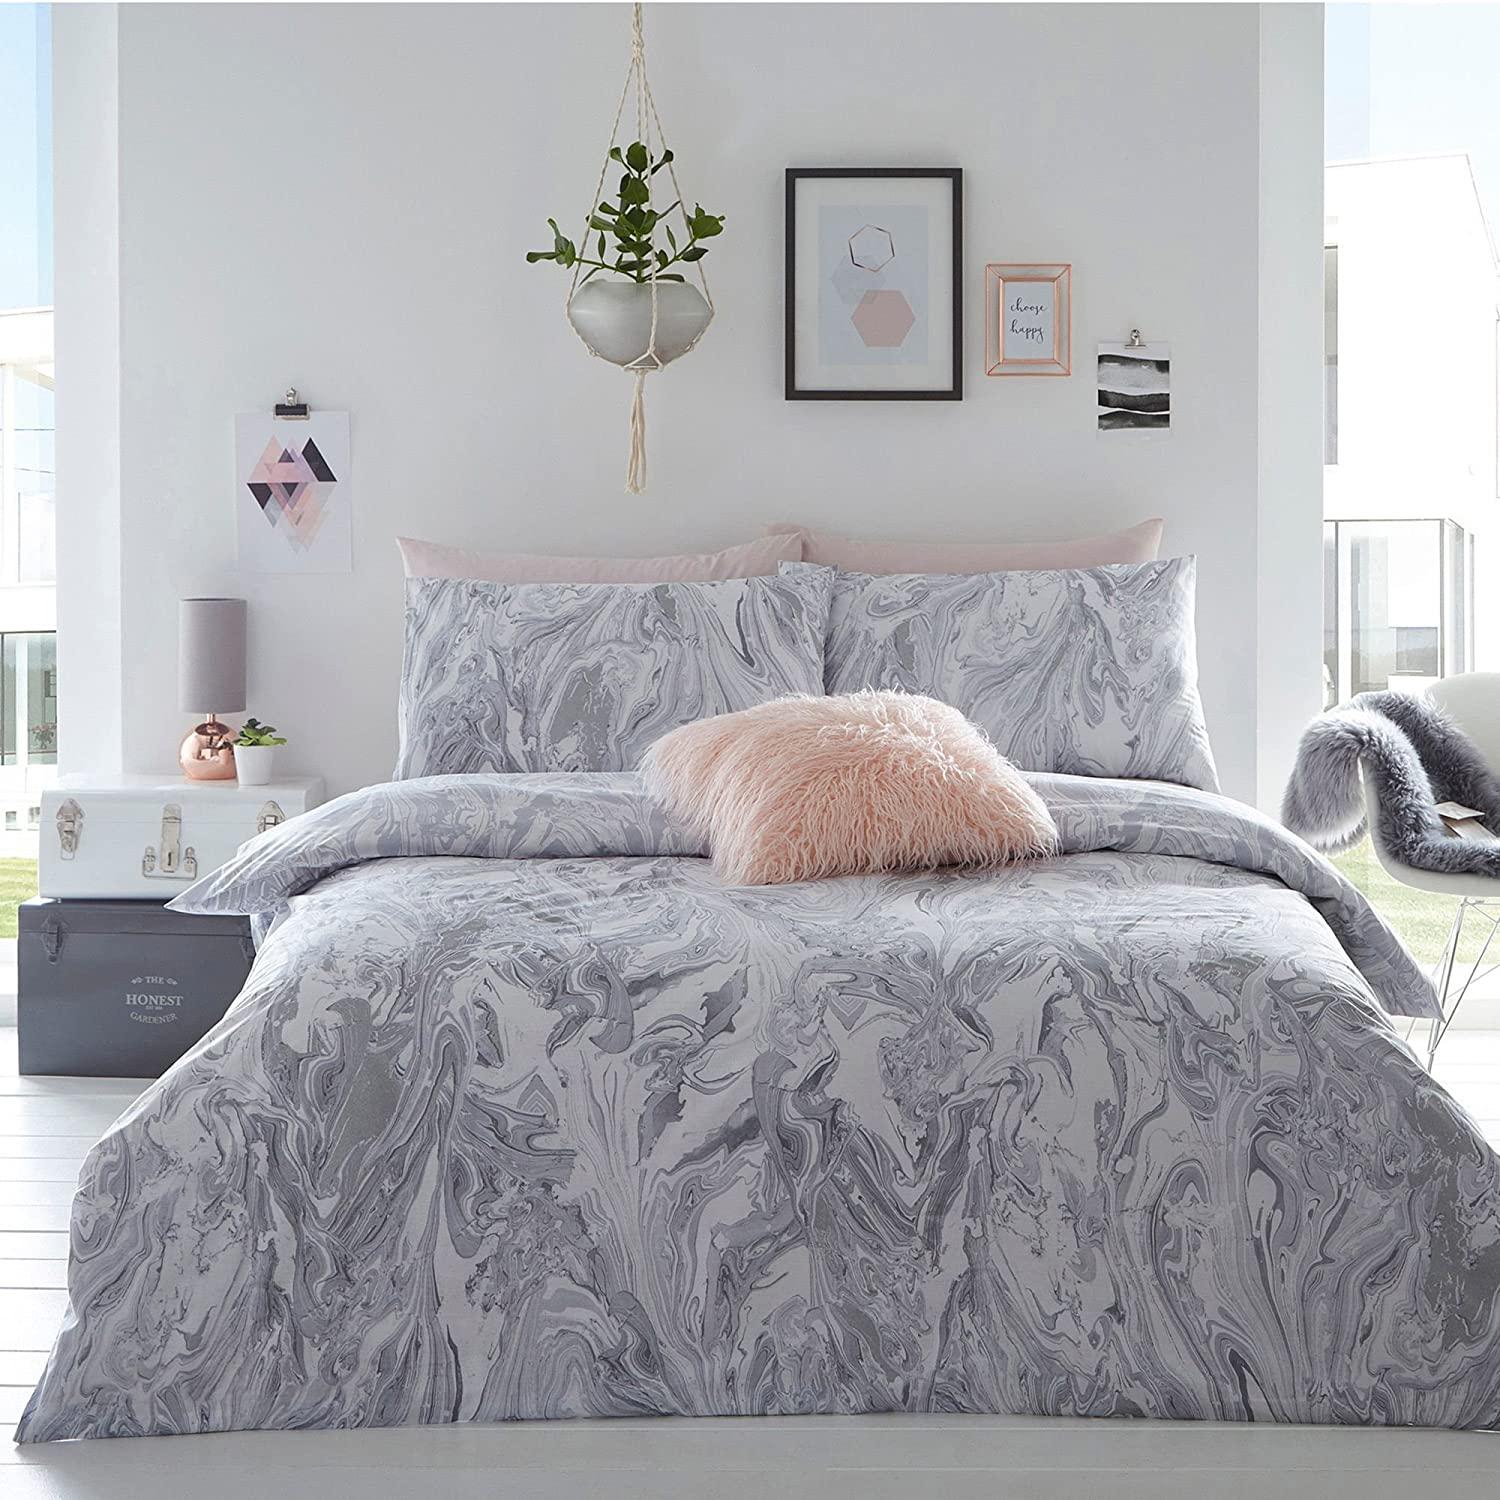 Debenhams Home Collection Basics Grey 'Cosmo Glitter Marble' Bedding Set Double